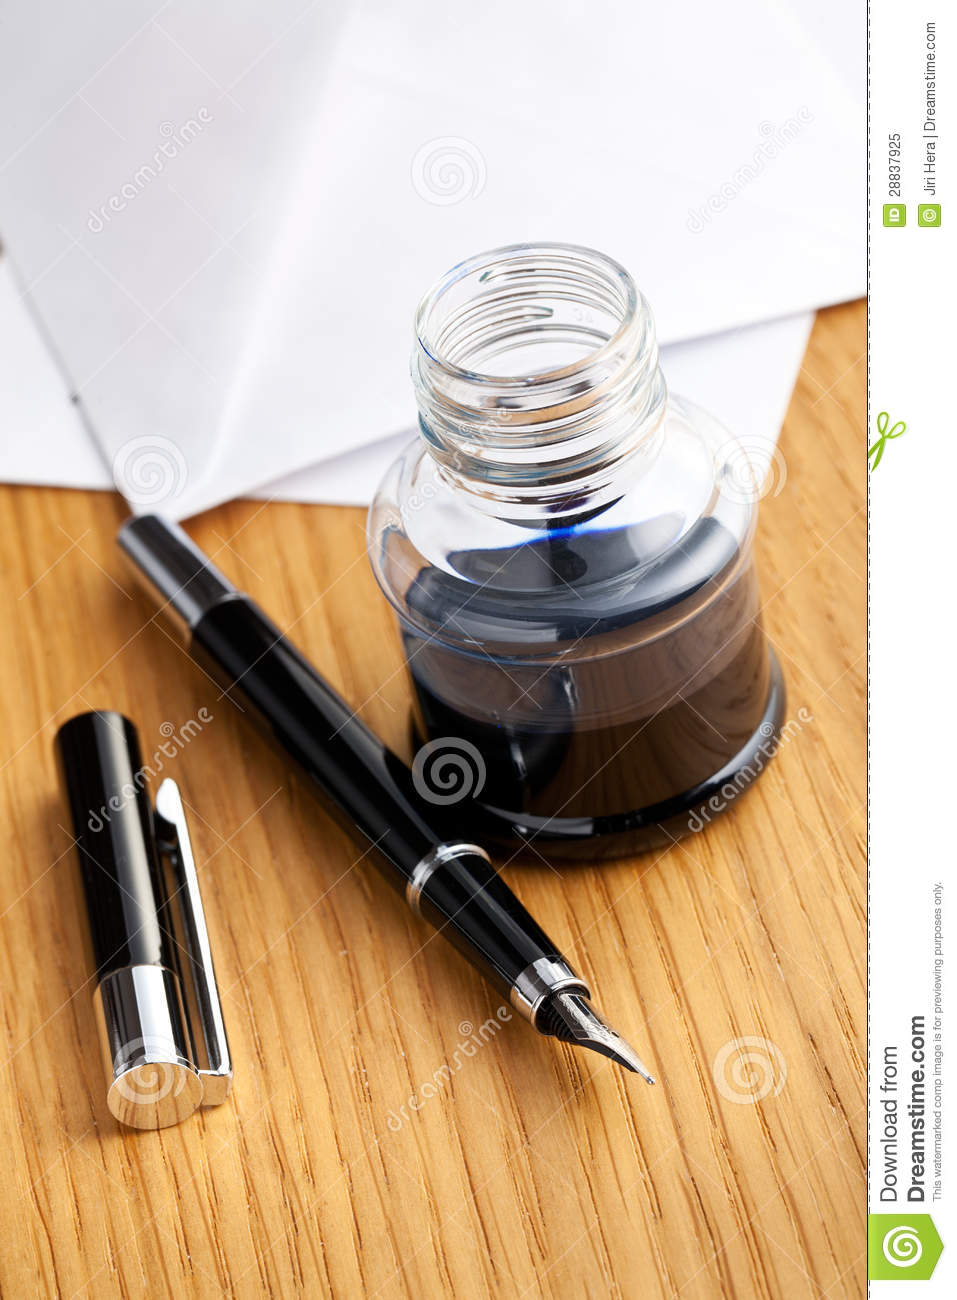 Fountain Pen And Inkwell On Desk Stock Image - Image of ...